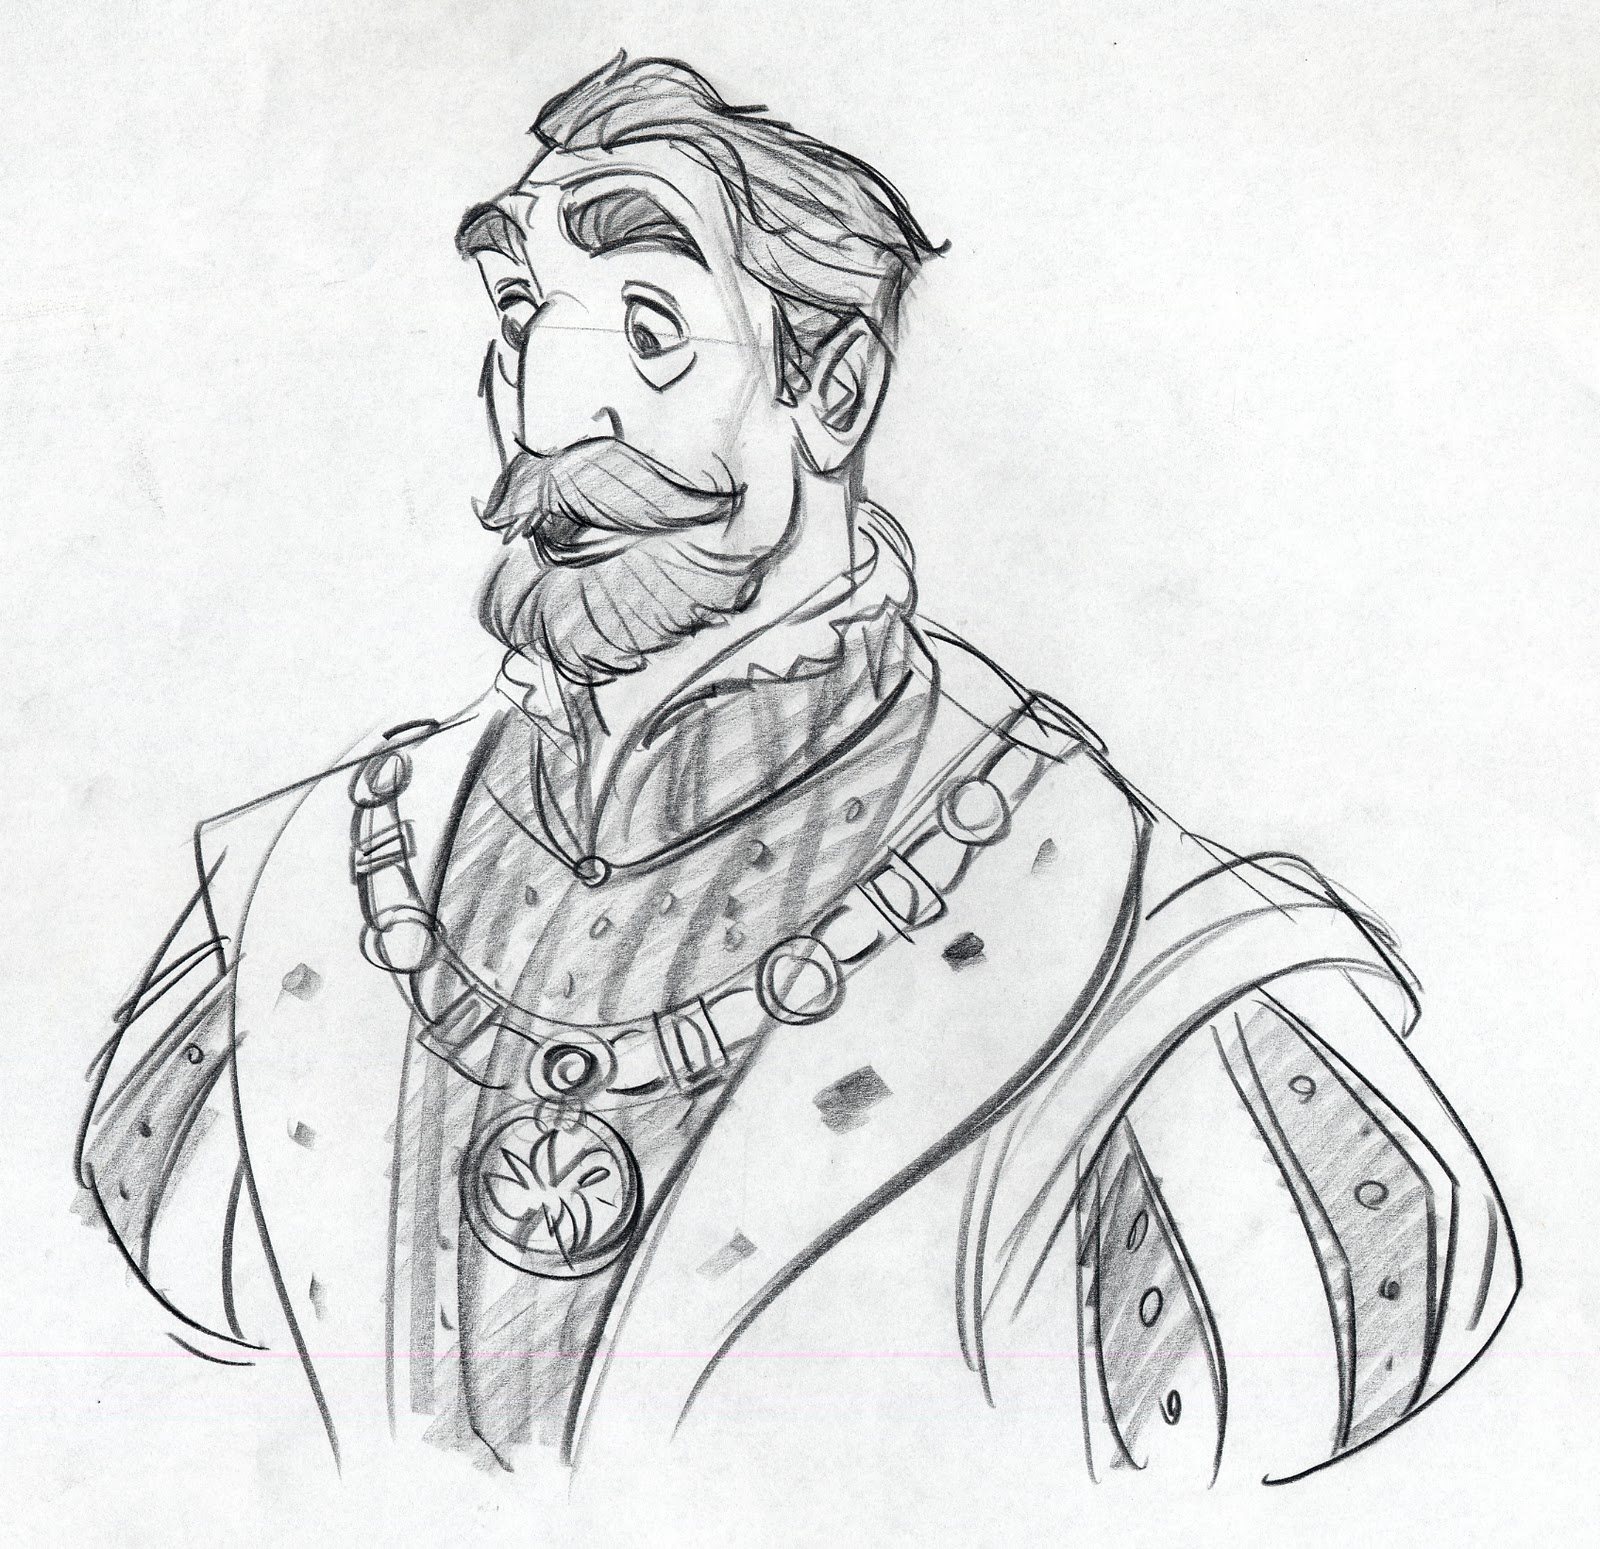 The Character Design : King character designs expression sheets tangled